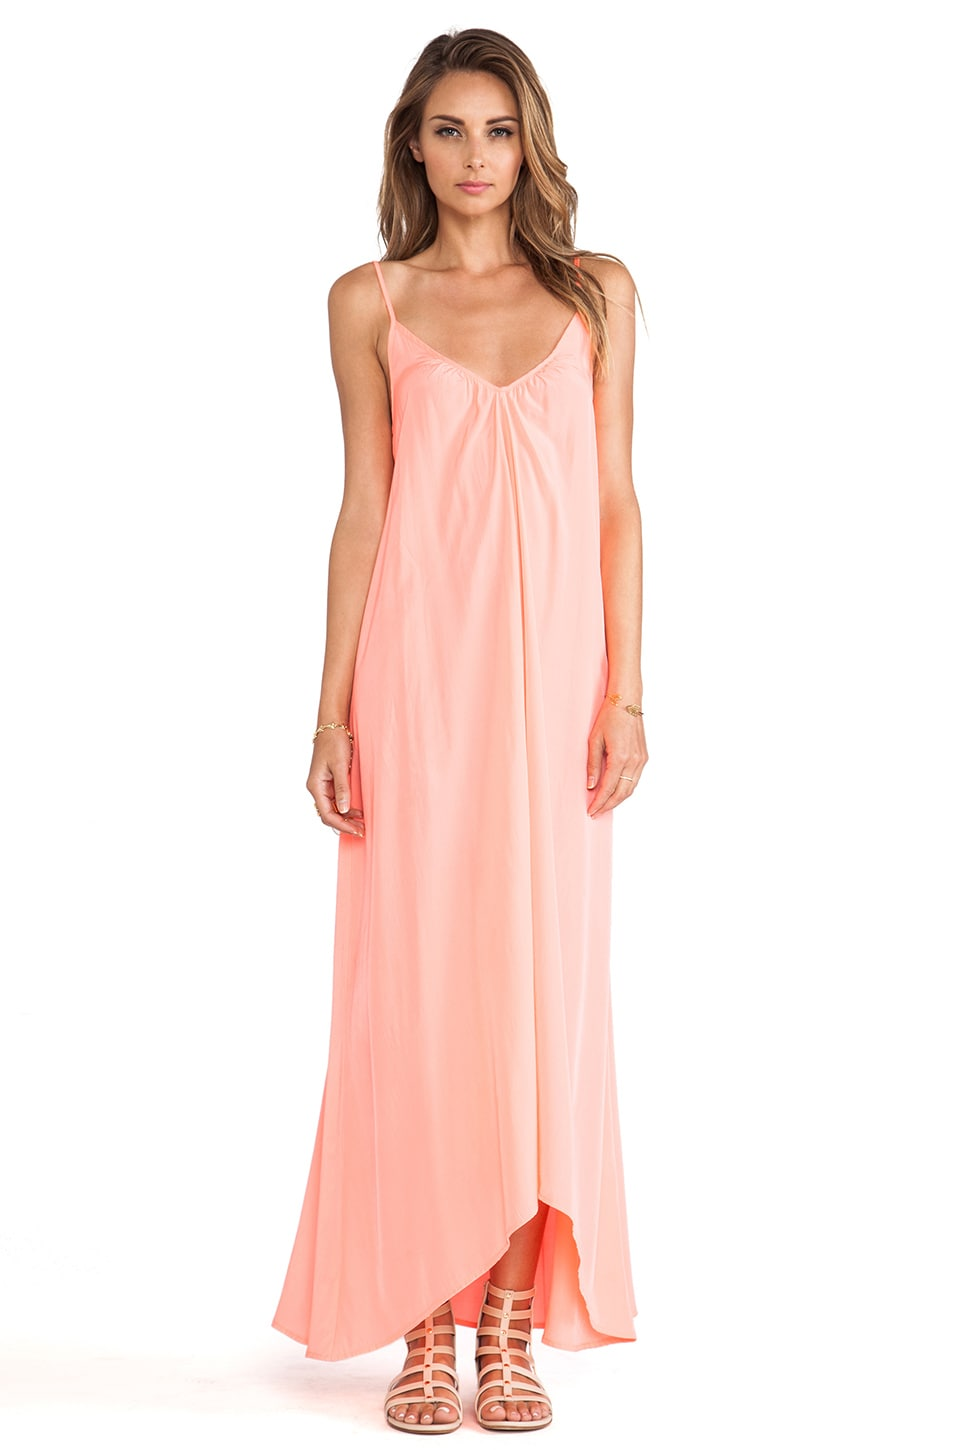 Pink Stitch Resort Maxi Dress in Candy